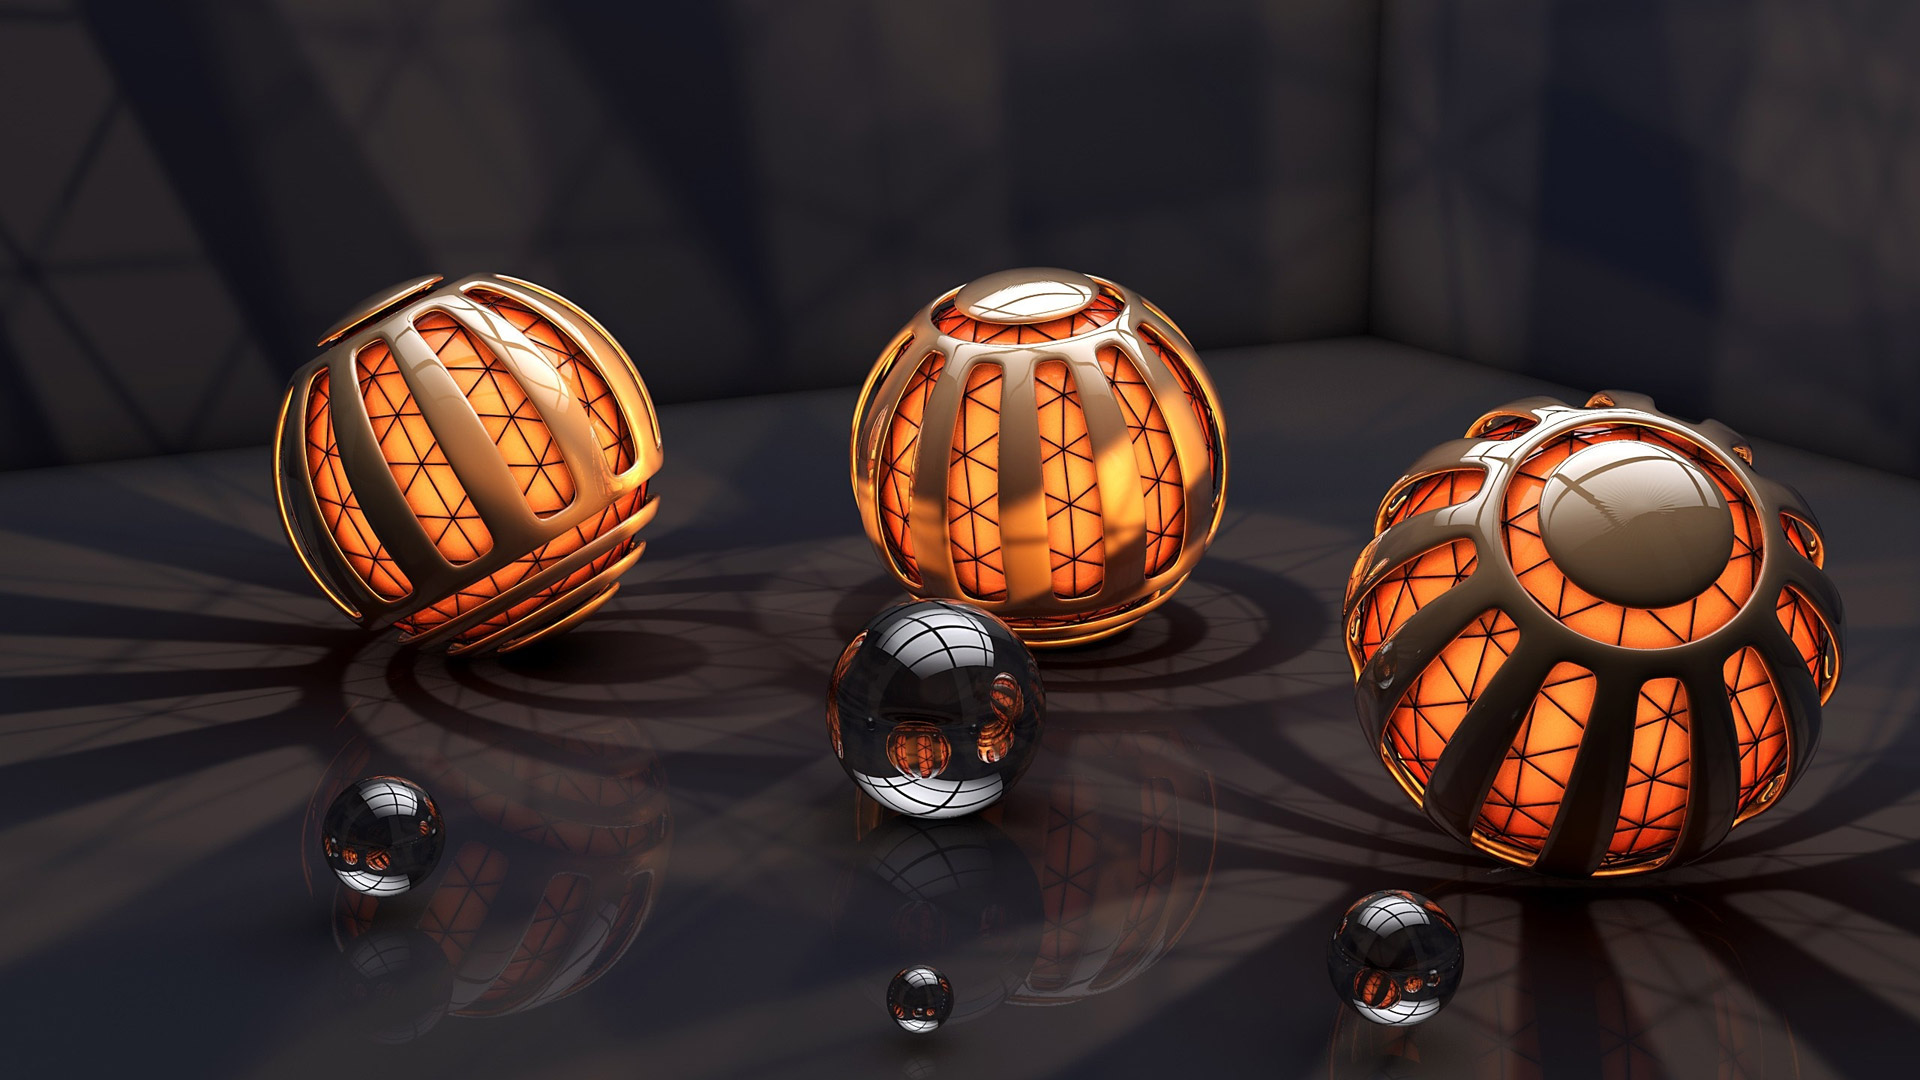 3d black and orange balls wallpapers55com   Best Wallpapers for PCs 1920x1080